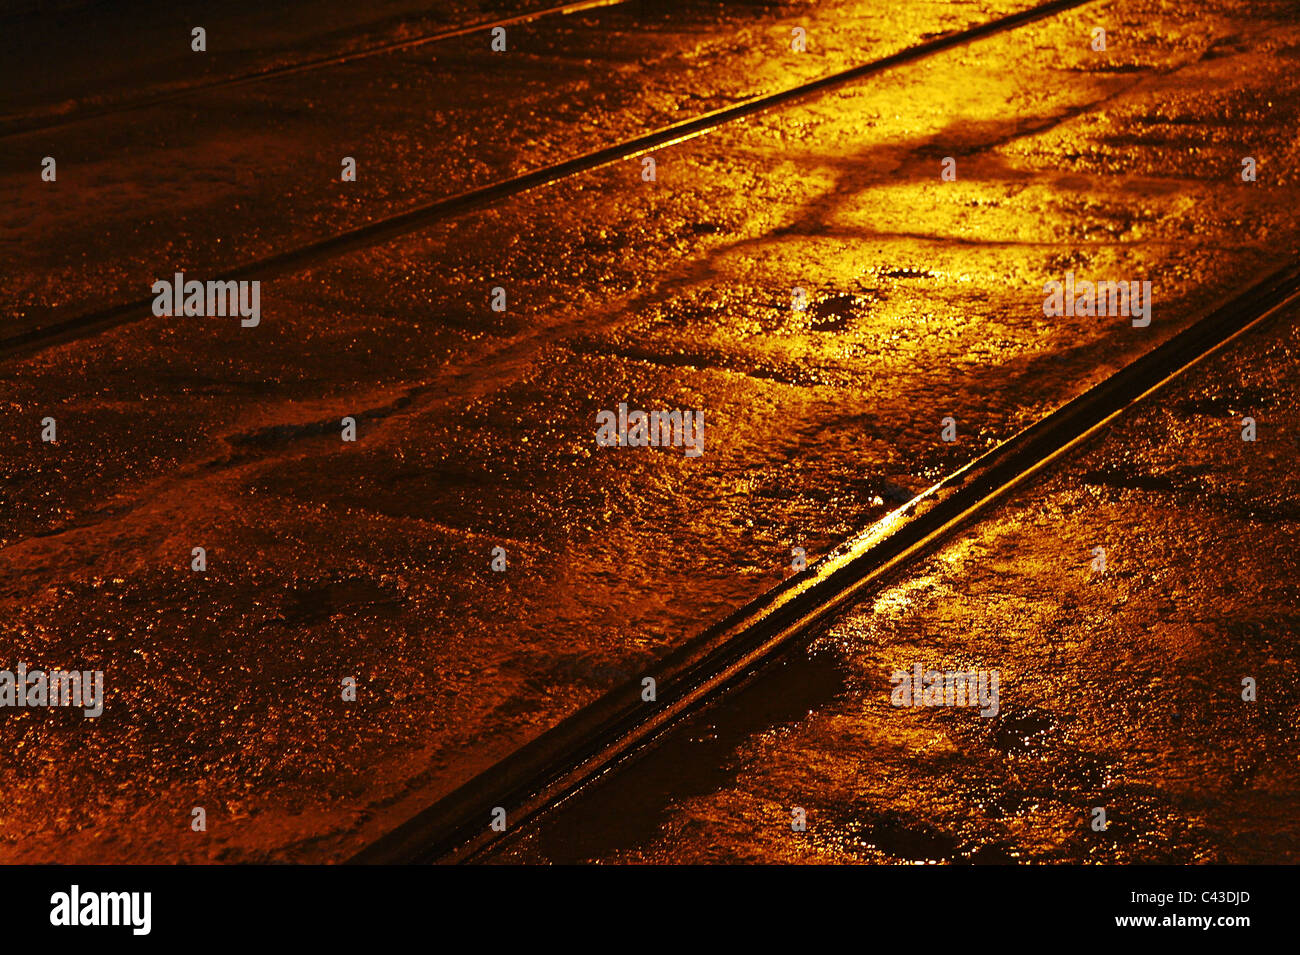 Tram rails in the shined tunnel, Moscow, Russia Stock Photo